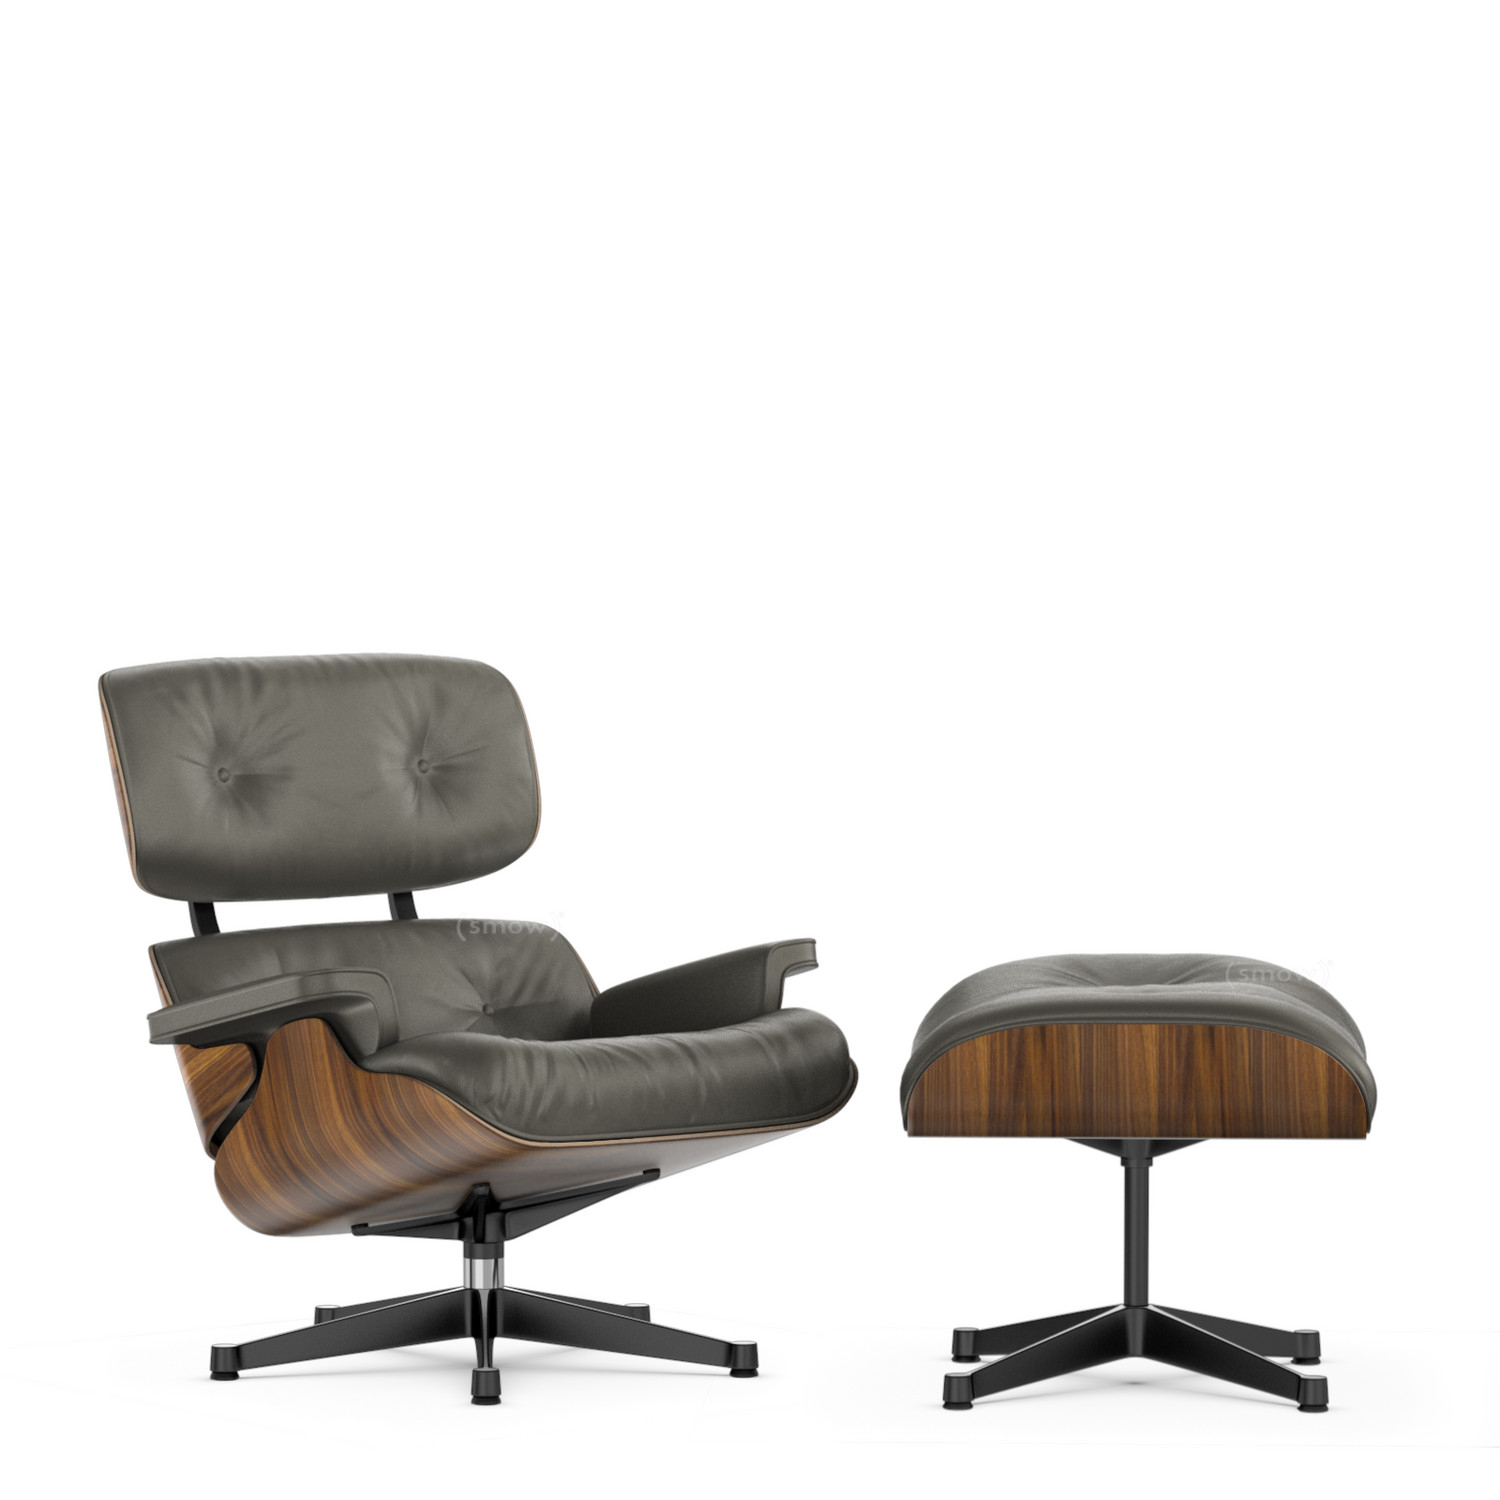 Vitra Lounge Chair Ottoman Beauty Versions Walnut With Black